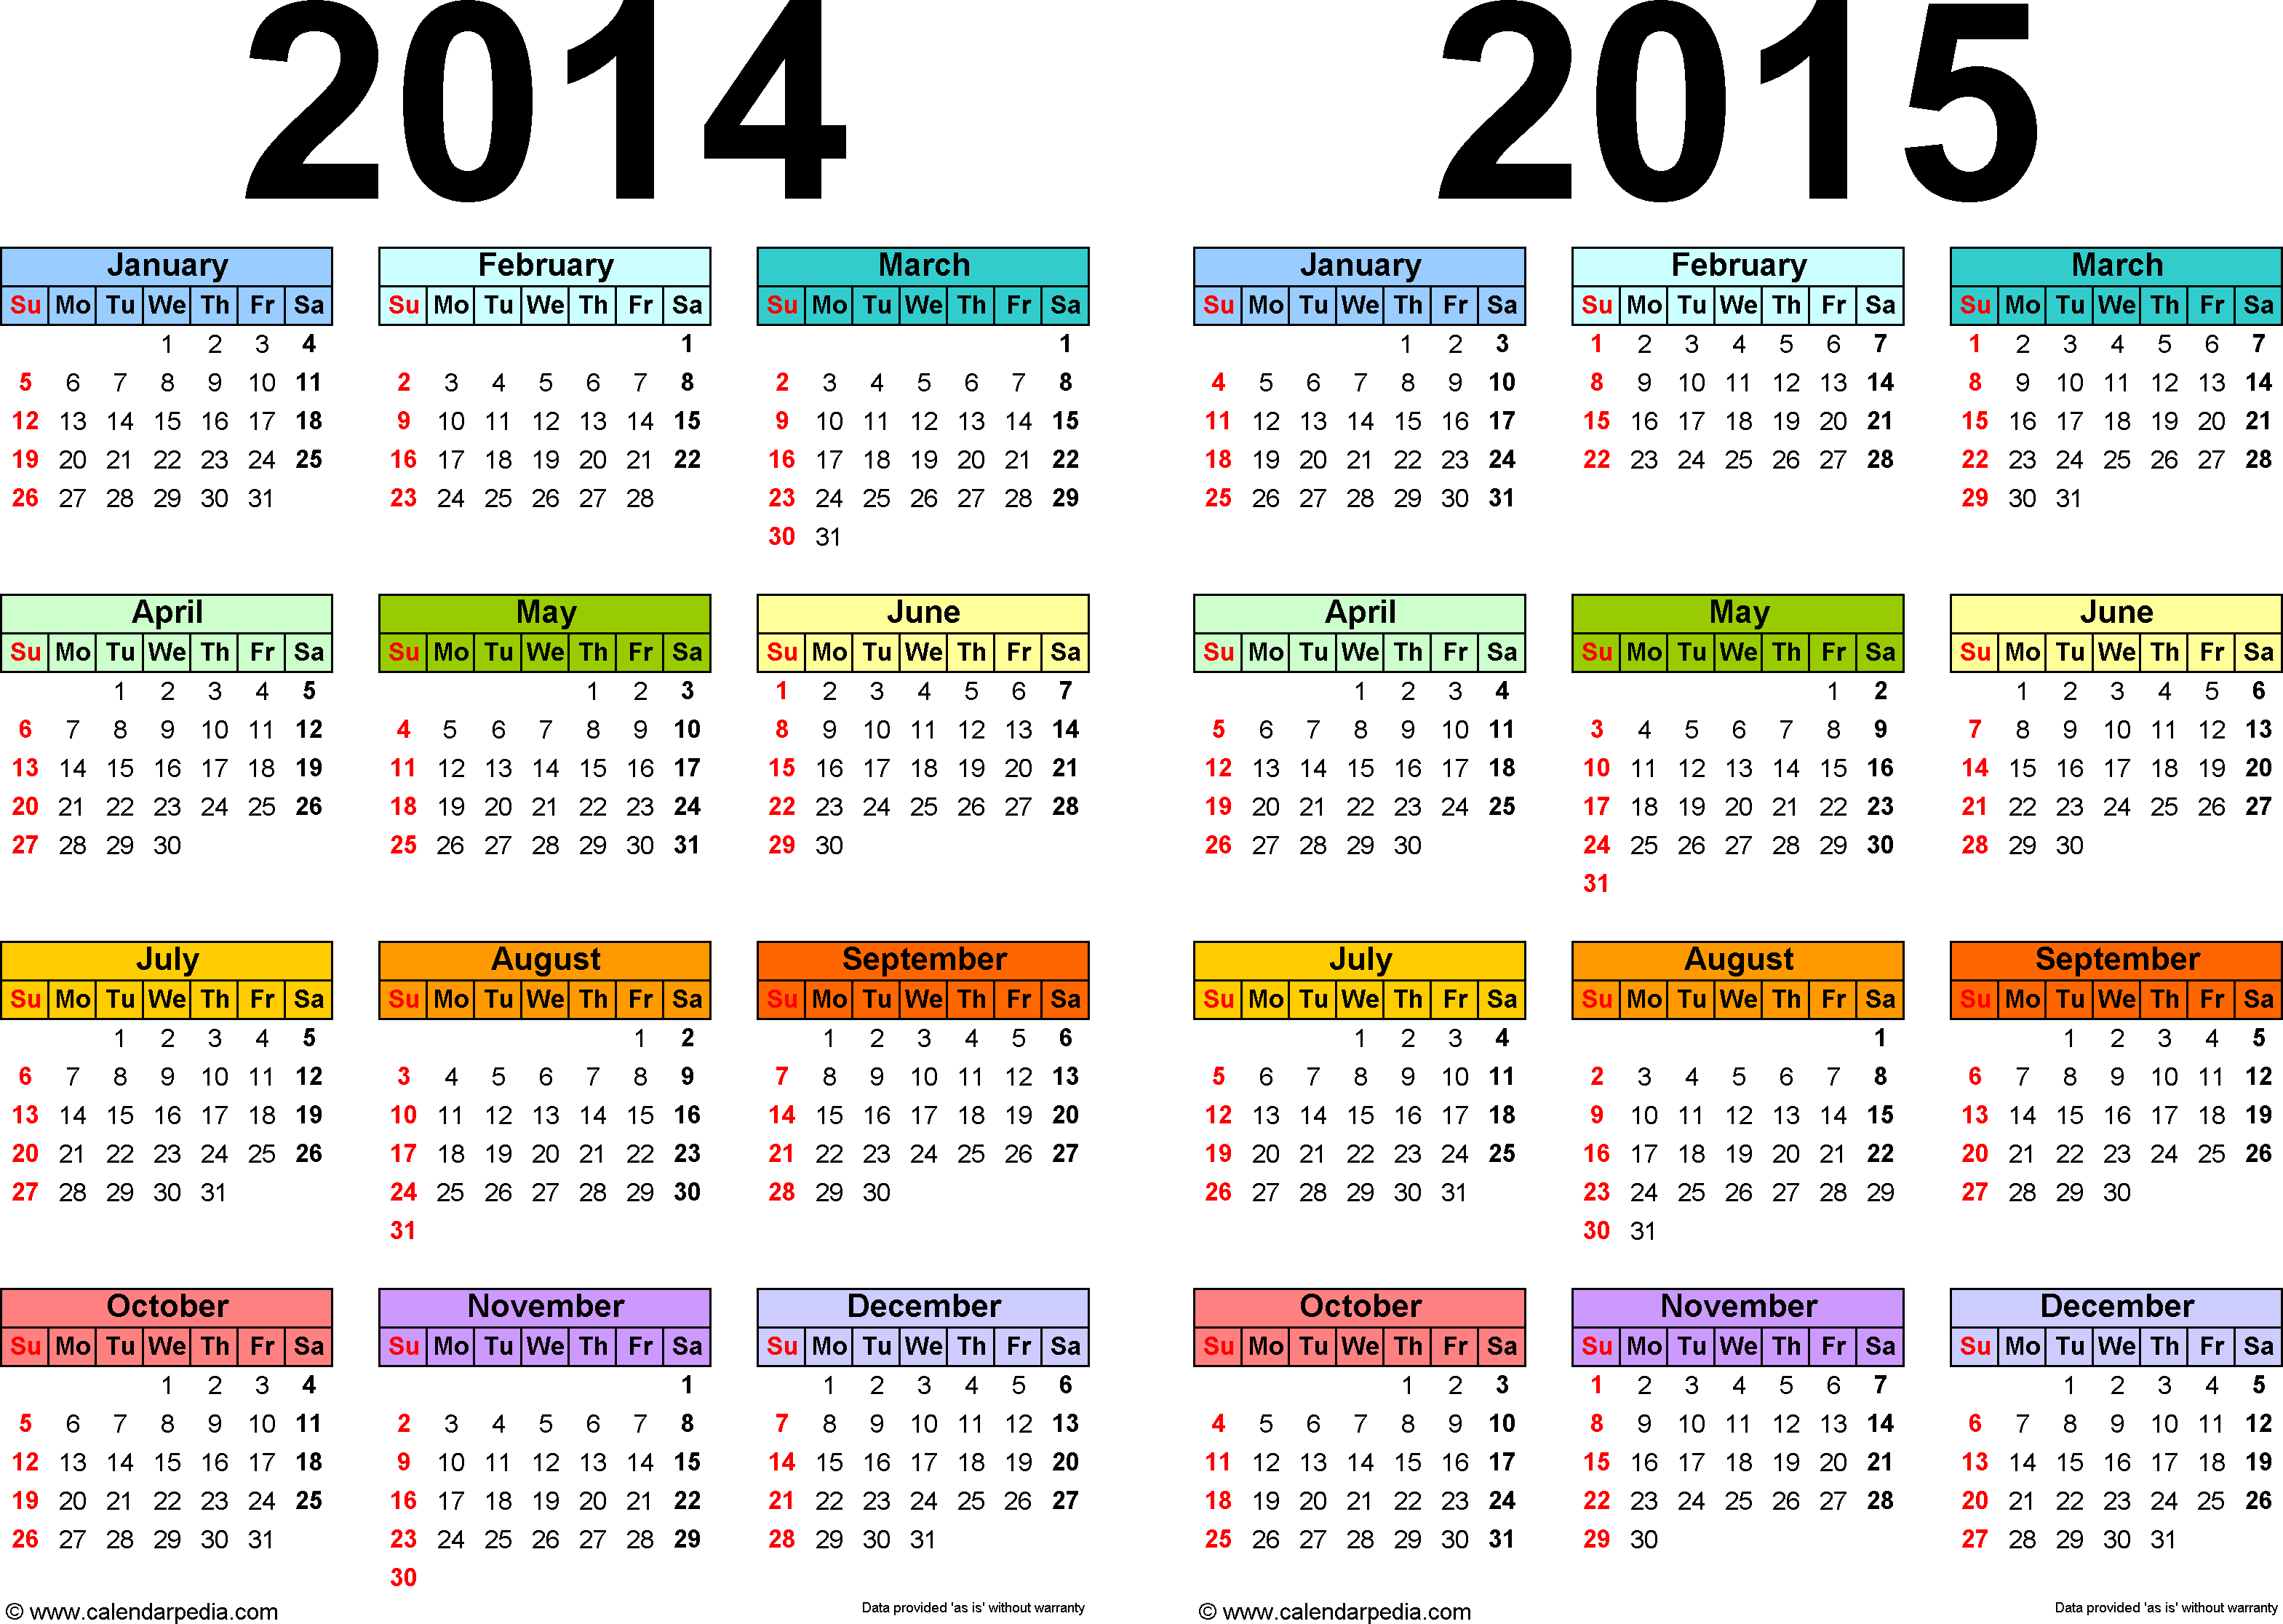 2014-2015 Calendar - free printable two-year Excel calendars